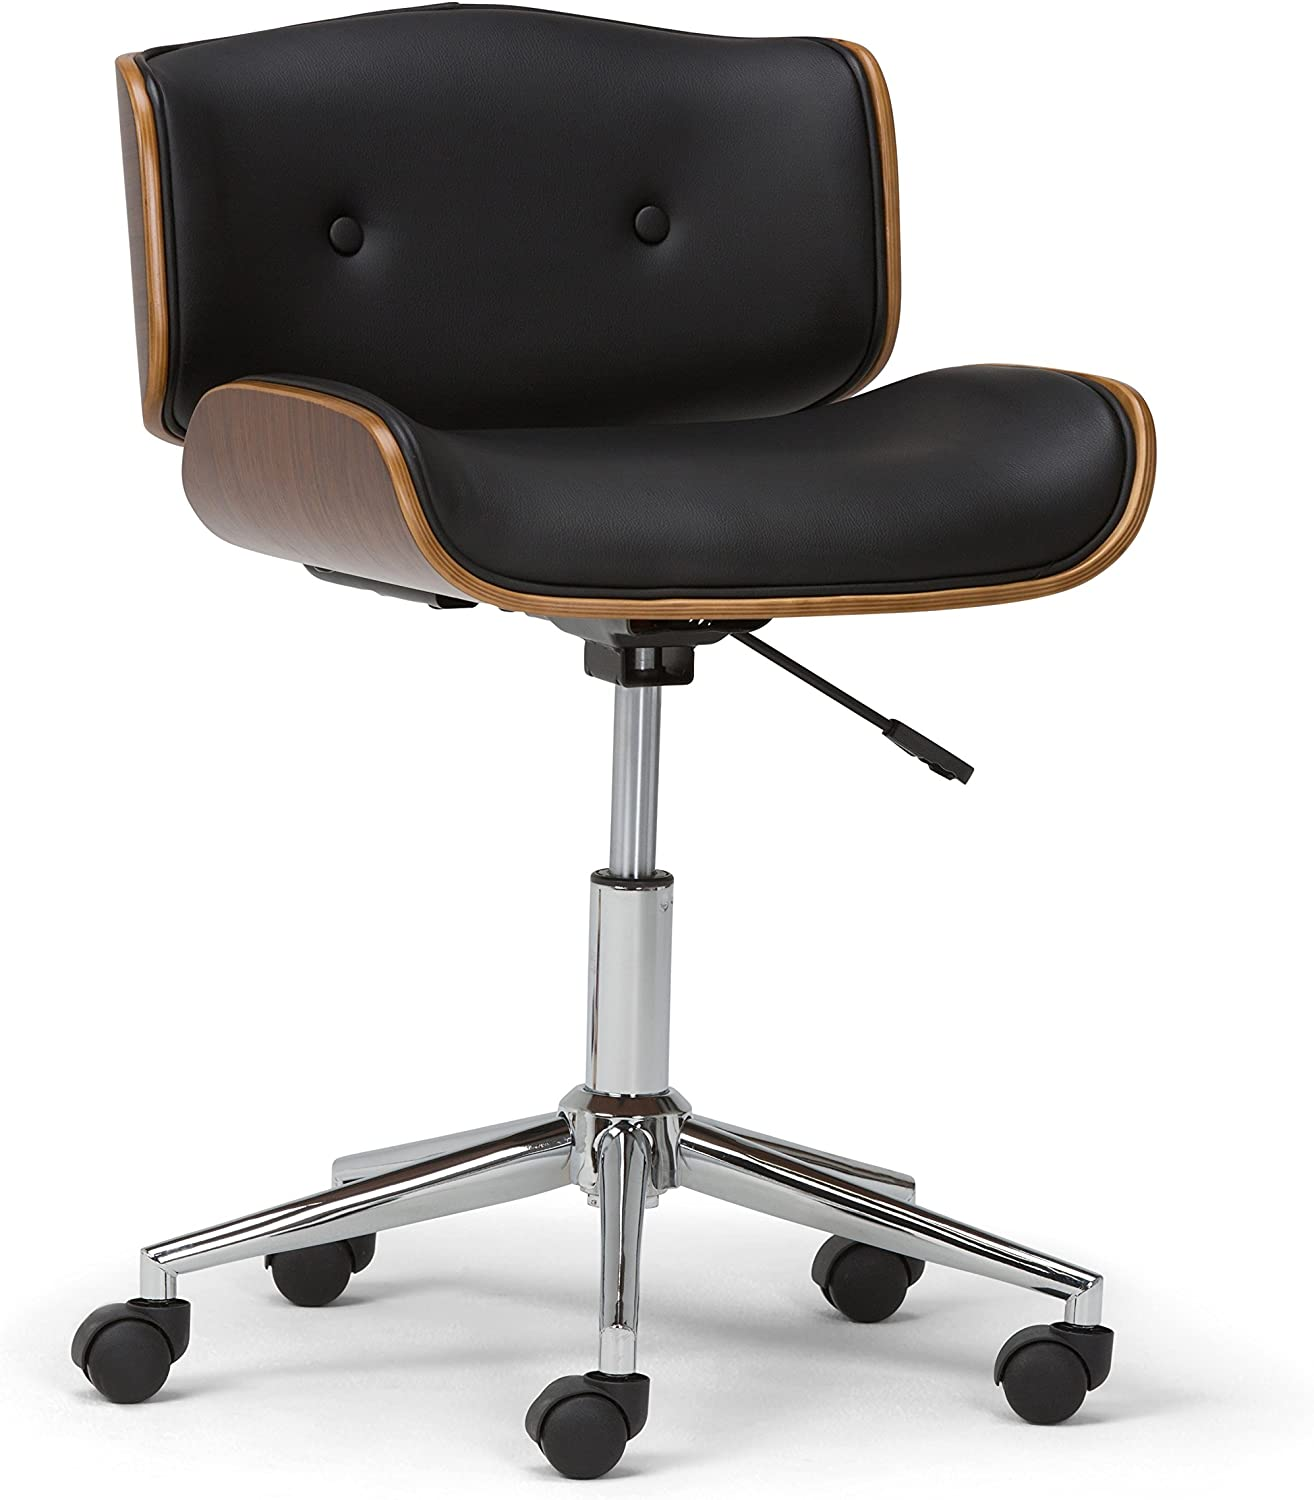 Simpli Home AXCDAXN-BL Dax Swivel Adjustable Executive Computer Bentwood Office Chair in Black, Natural